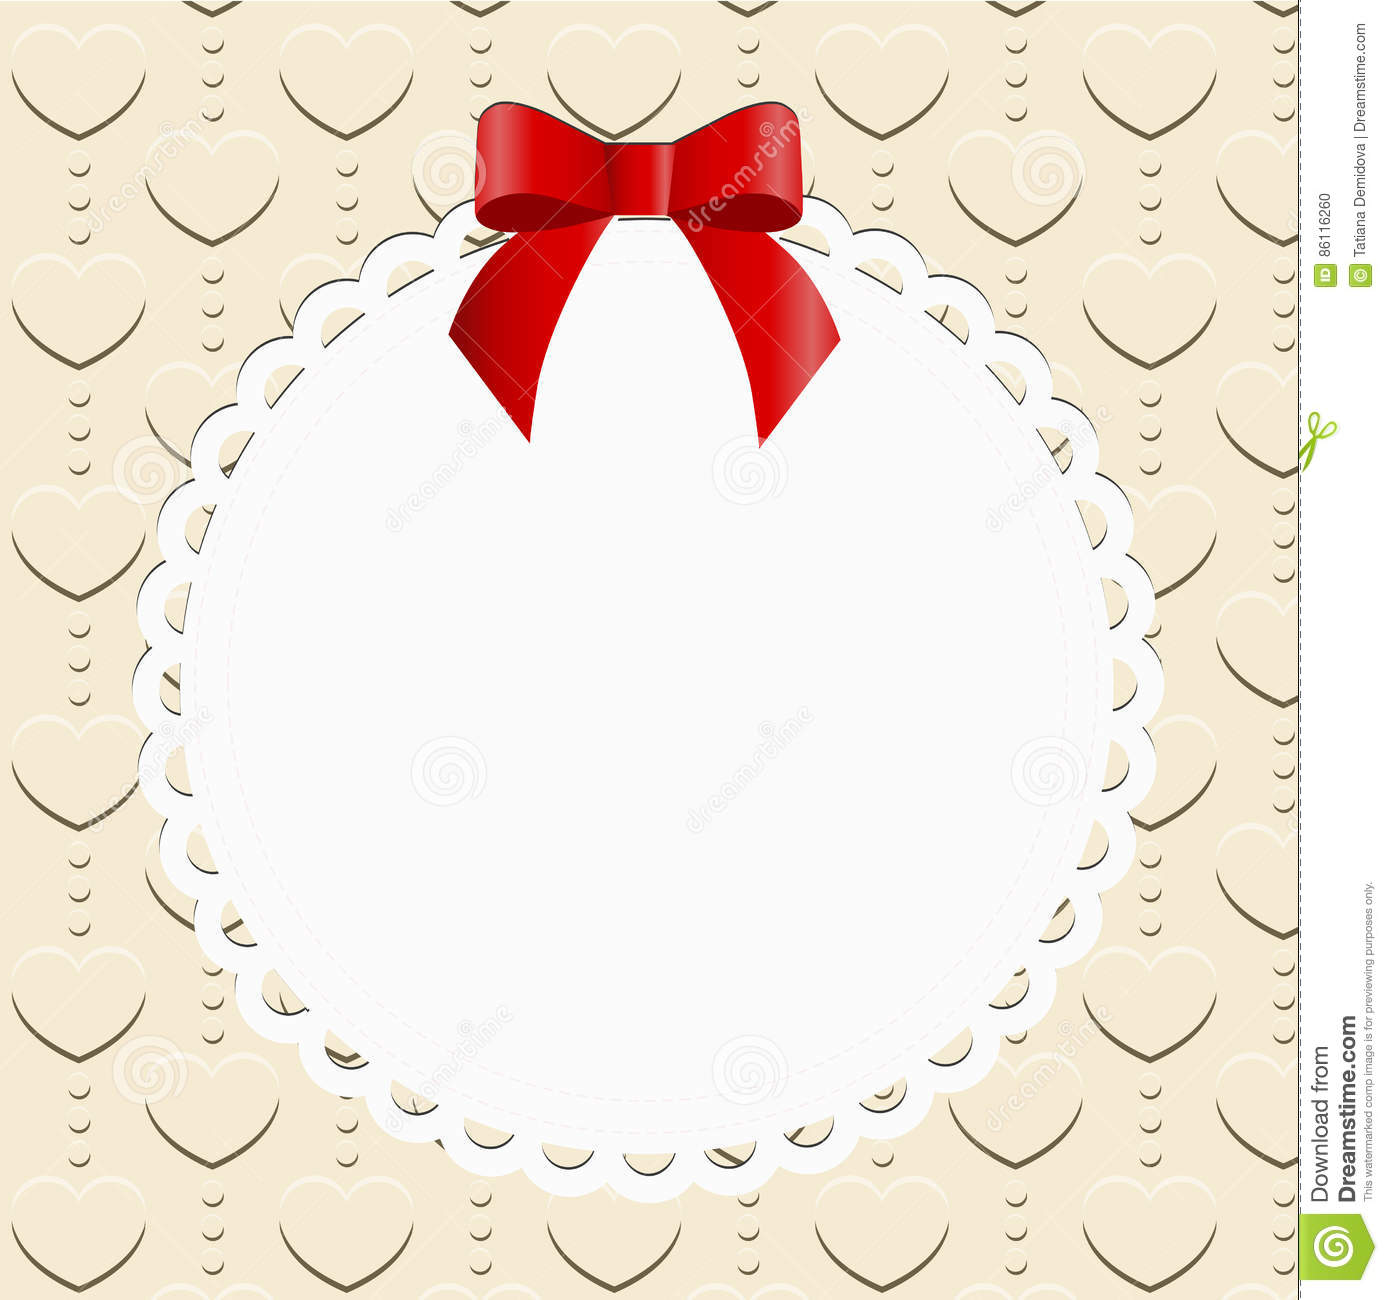 Round Openwork Frame With Red Bow On Background Stock Vector